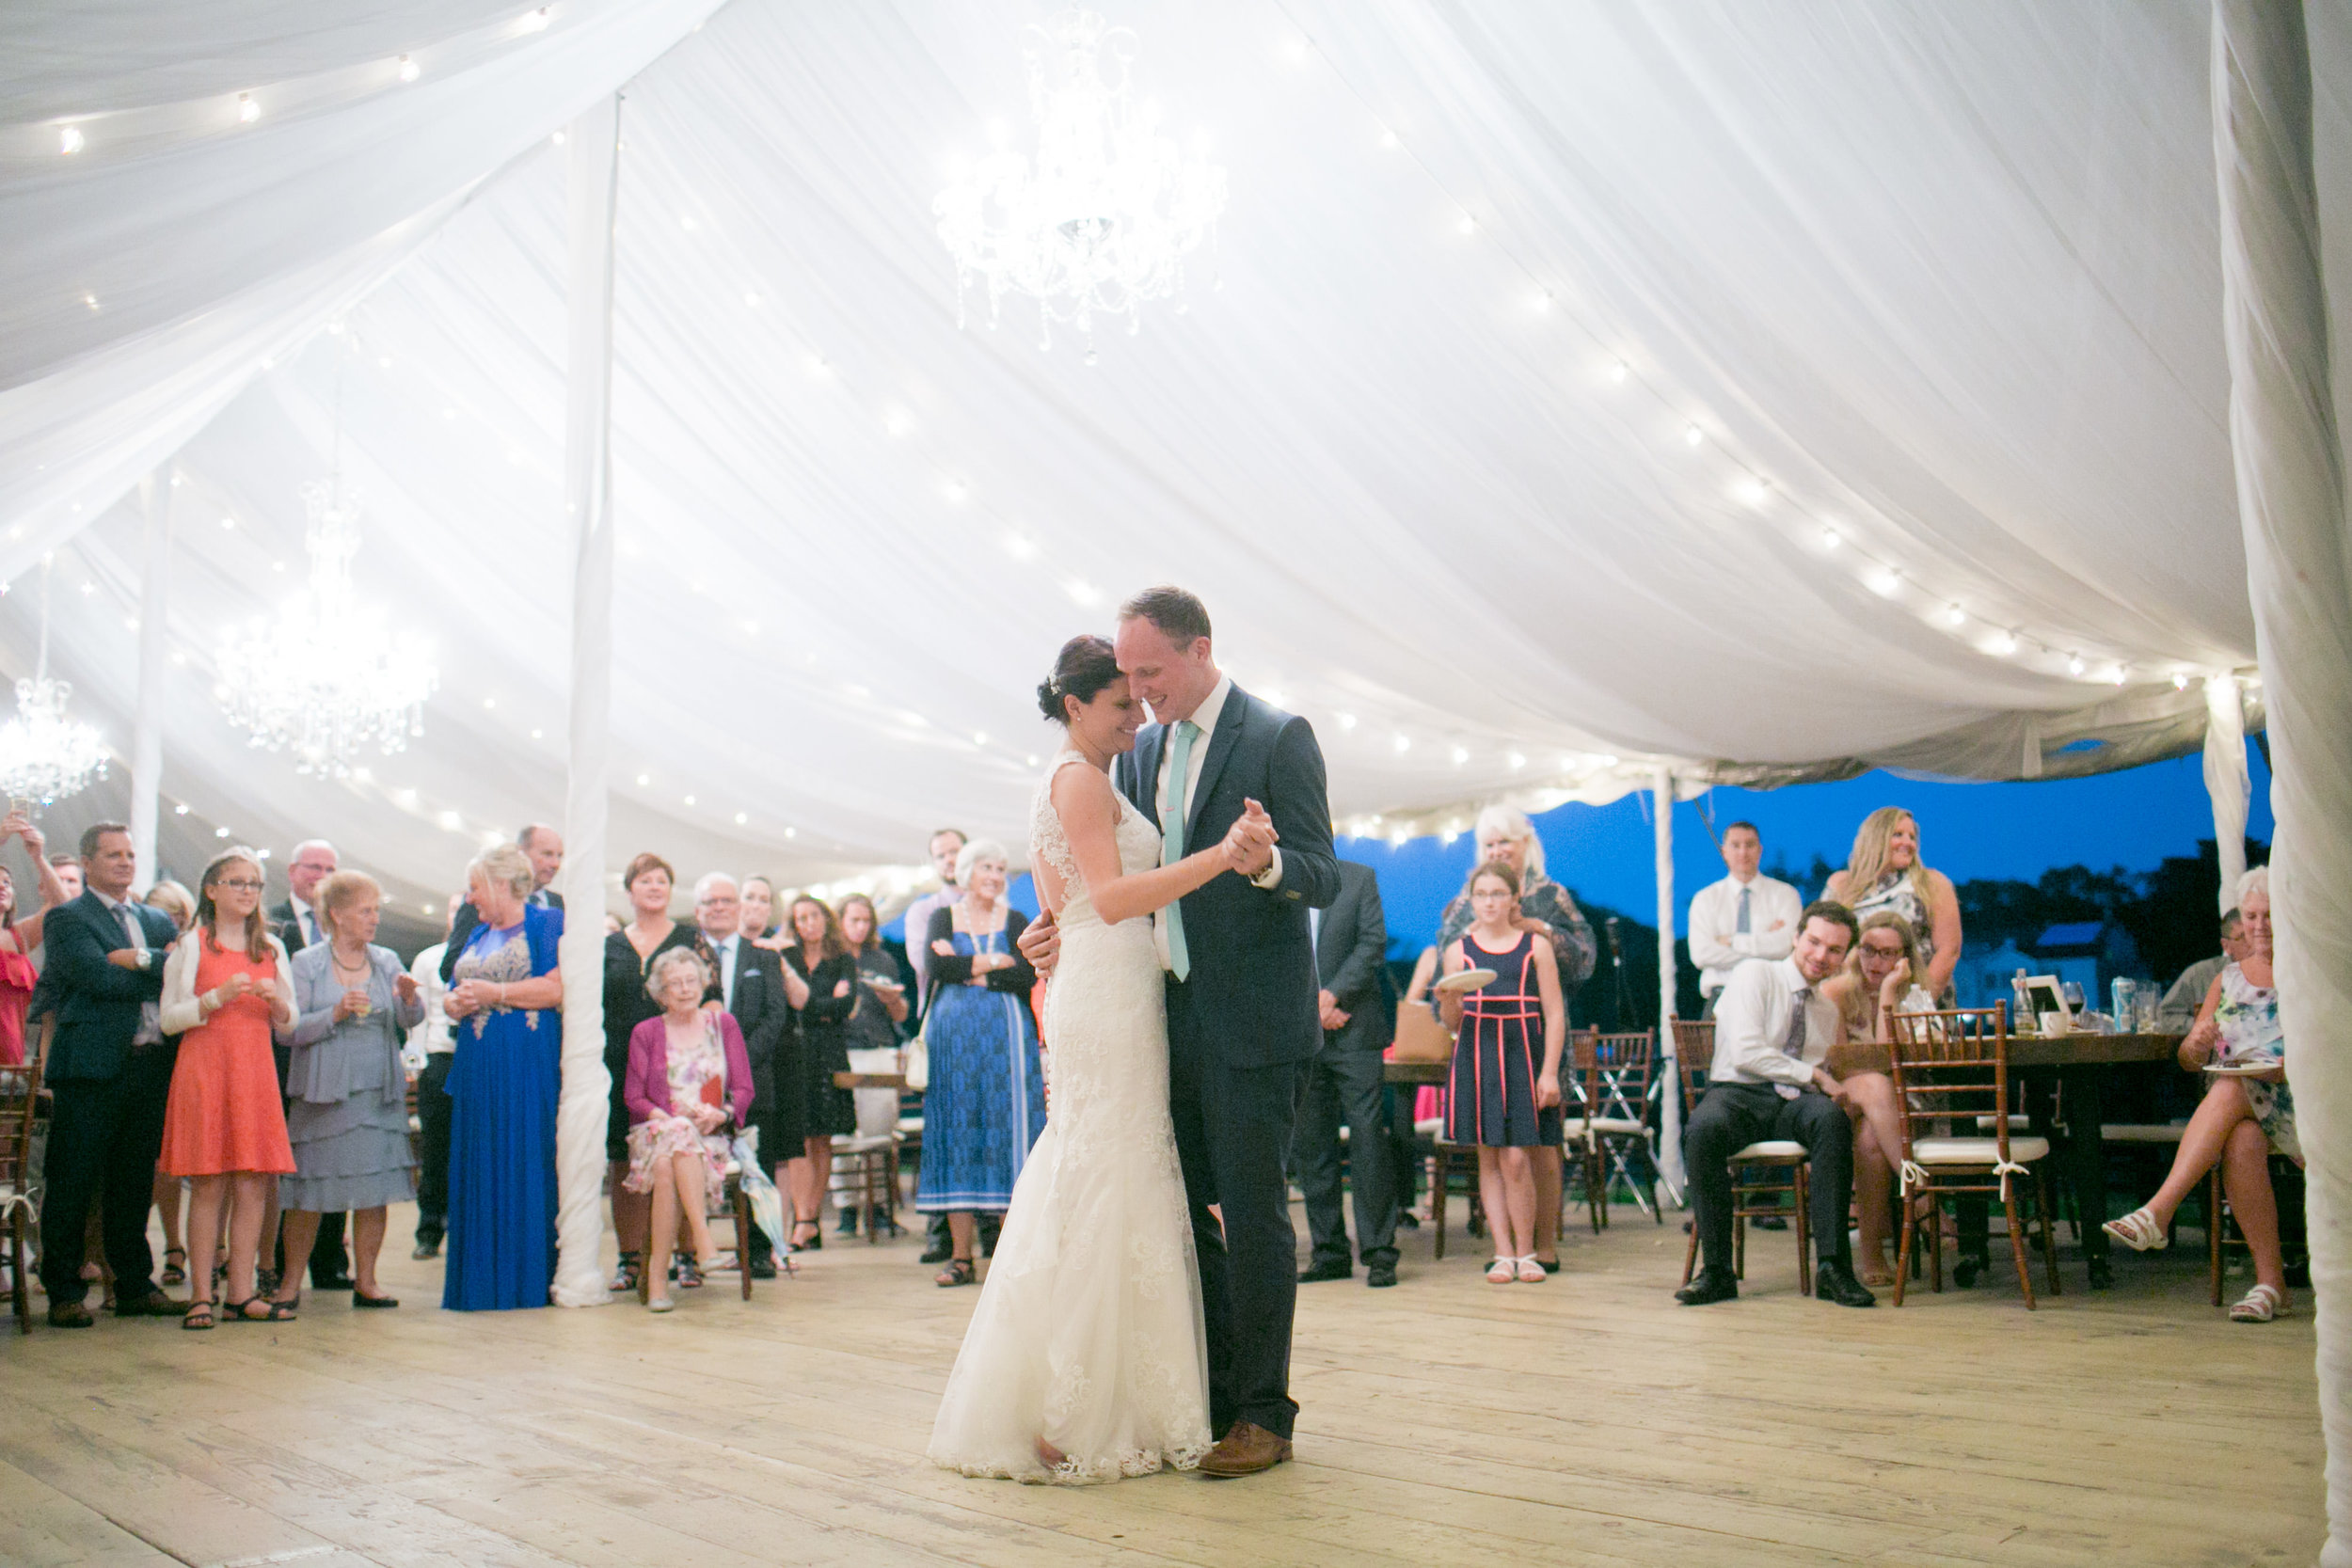 Sarah + Jason - Daniel Ricci Weddings High Res. Finals-655.jpg